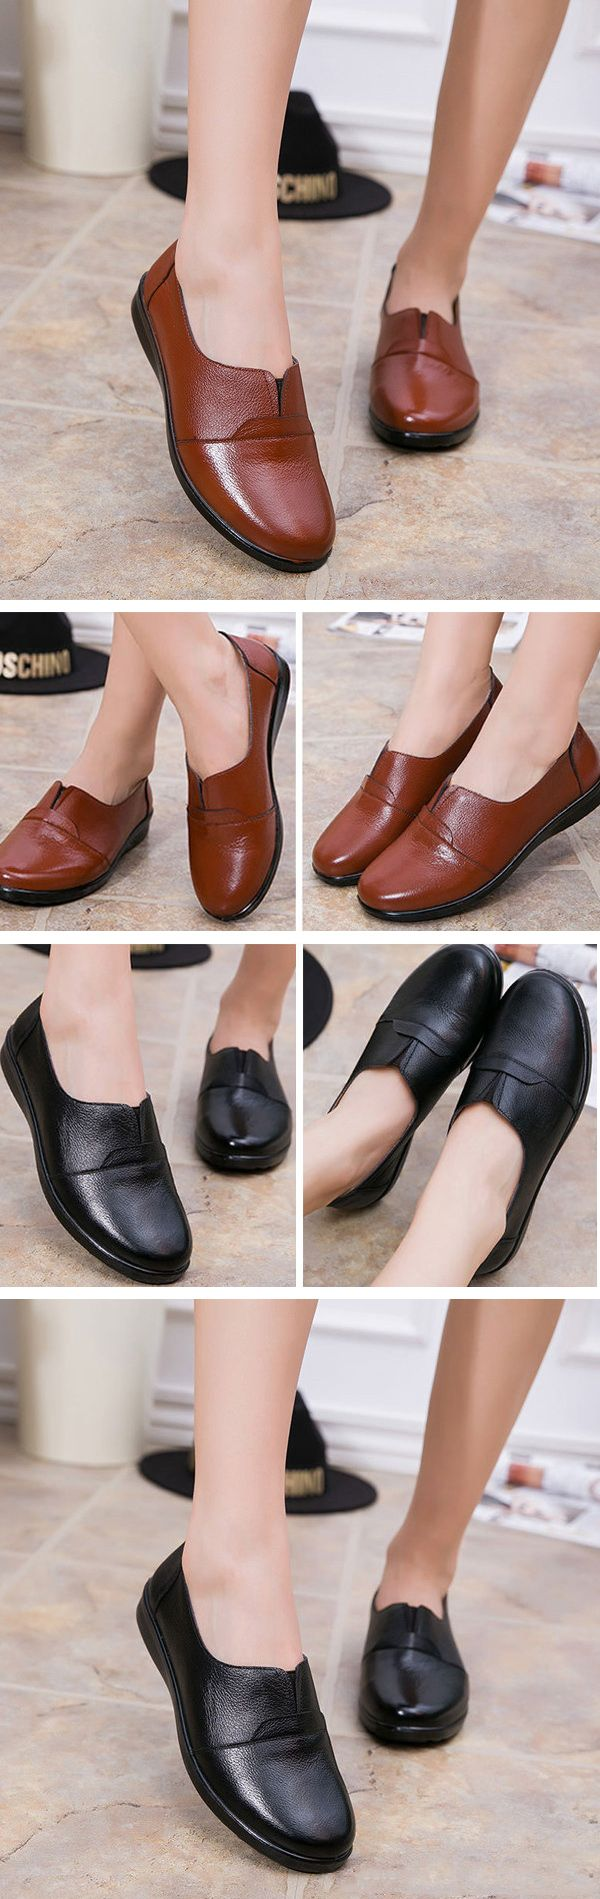 US$19.83 Leather Soft Sole Mother Work Shoes_Leather Flats_ Women Casual Shoes